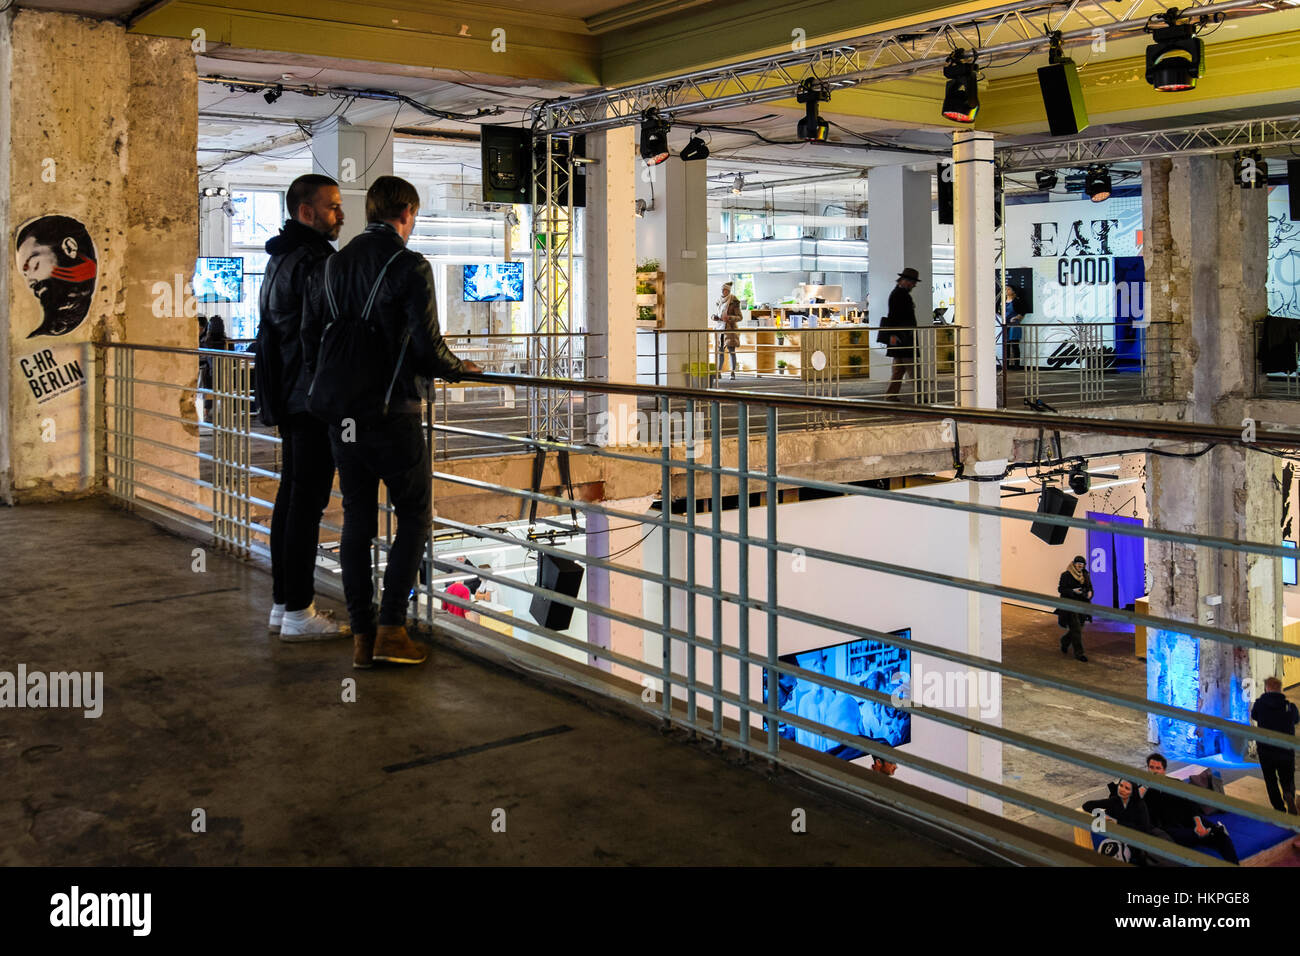 Berlin Mitte. C-HR Innovation and Creativity Festival in  historic Kaufhaus Jahndorf building - Stock Image